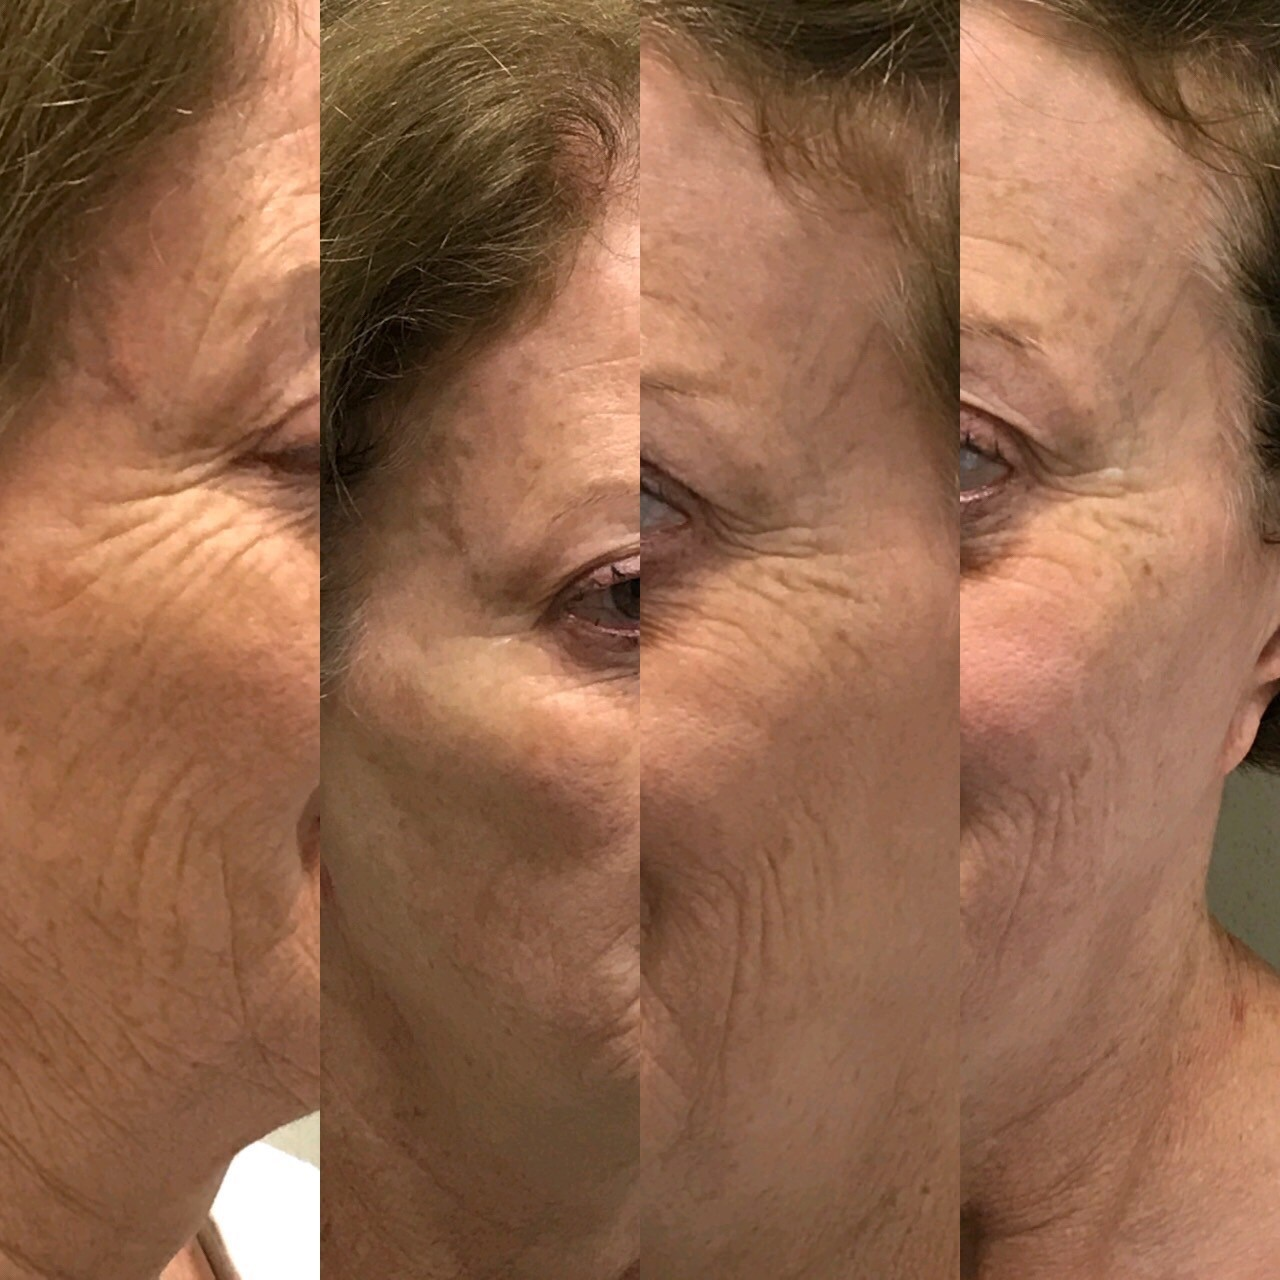 HIFU before and after beauty treatment course